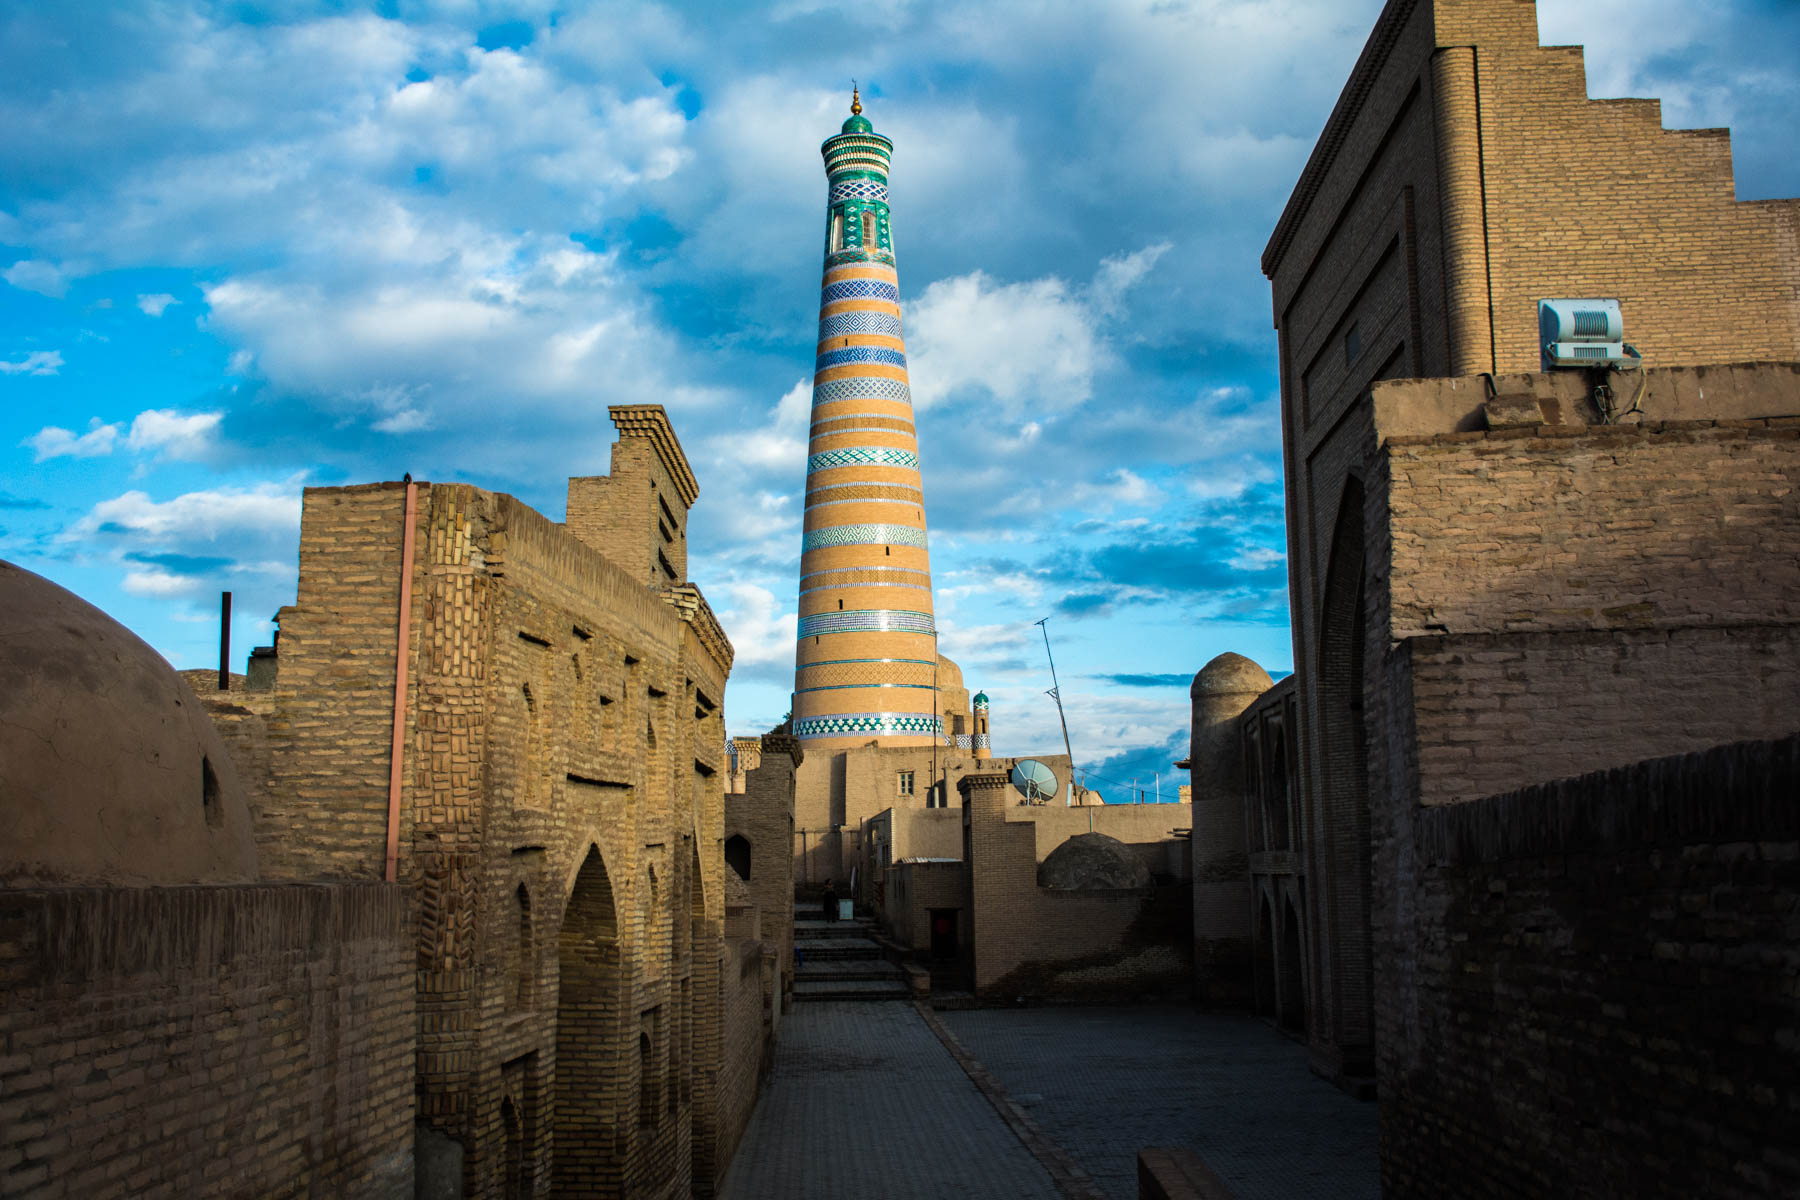 Two week Uzbekistan itinerary - Tura Murad Minaret in Khiva, Uzbekistan after a rain storm - Lost With Purpose